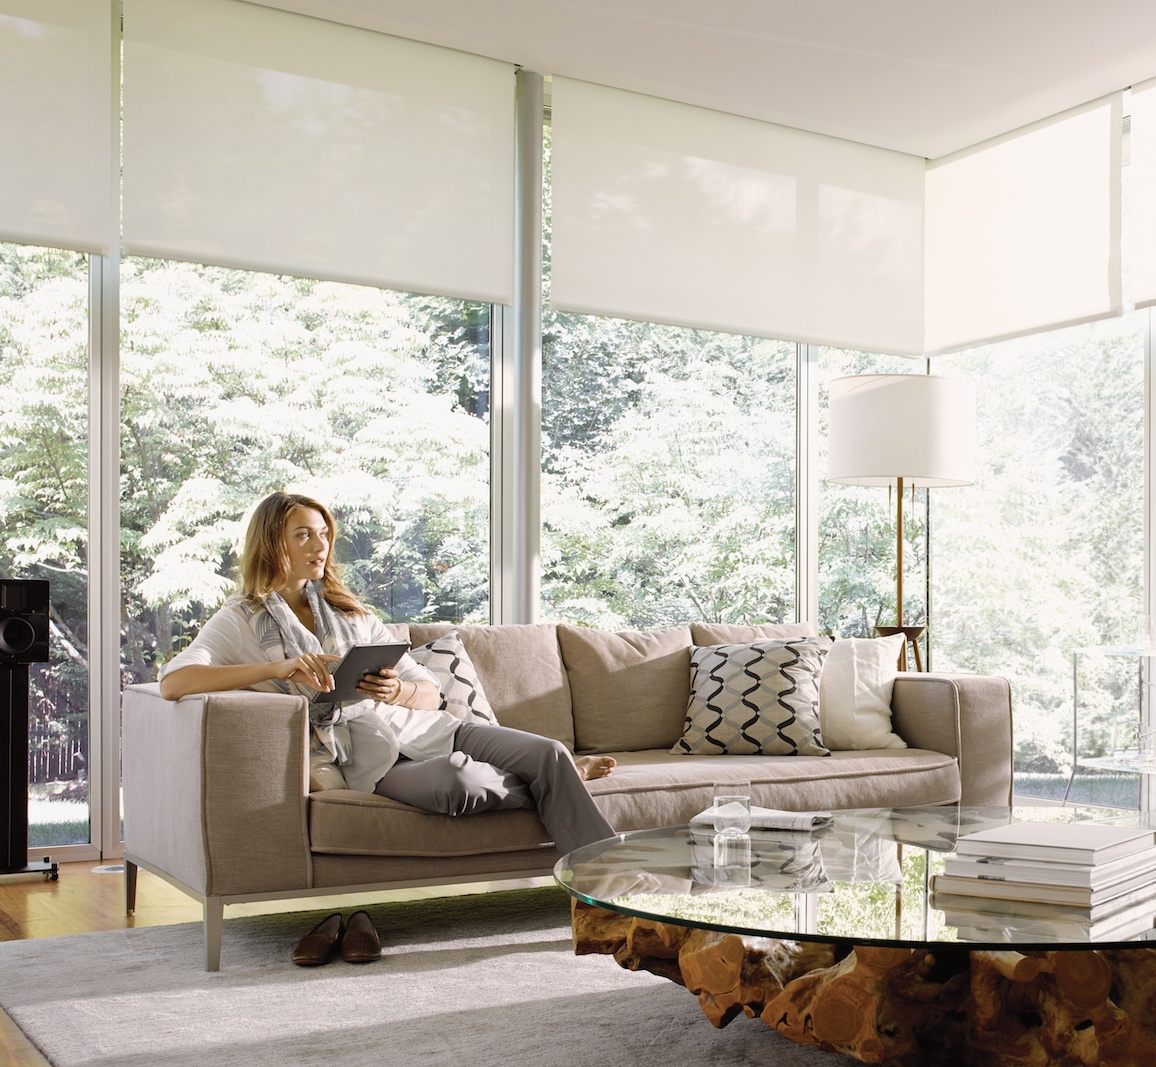 Living room with full-wall windows and shades